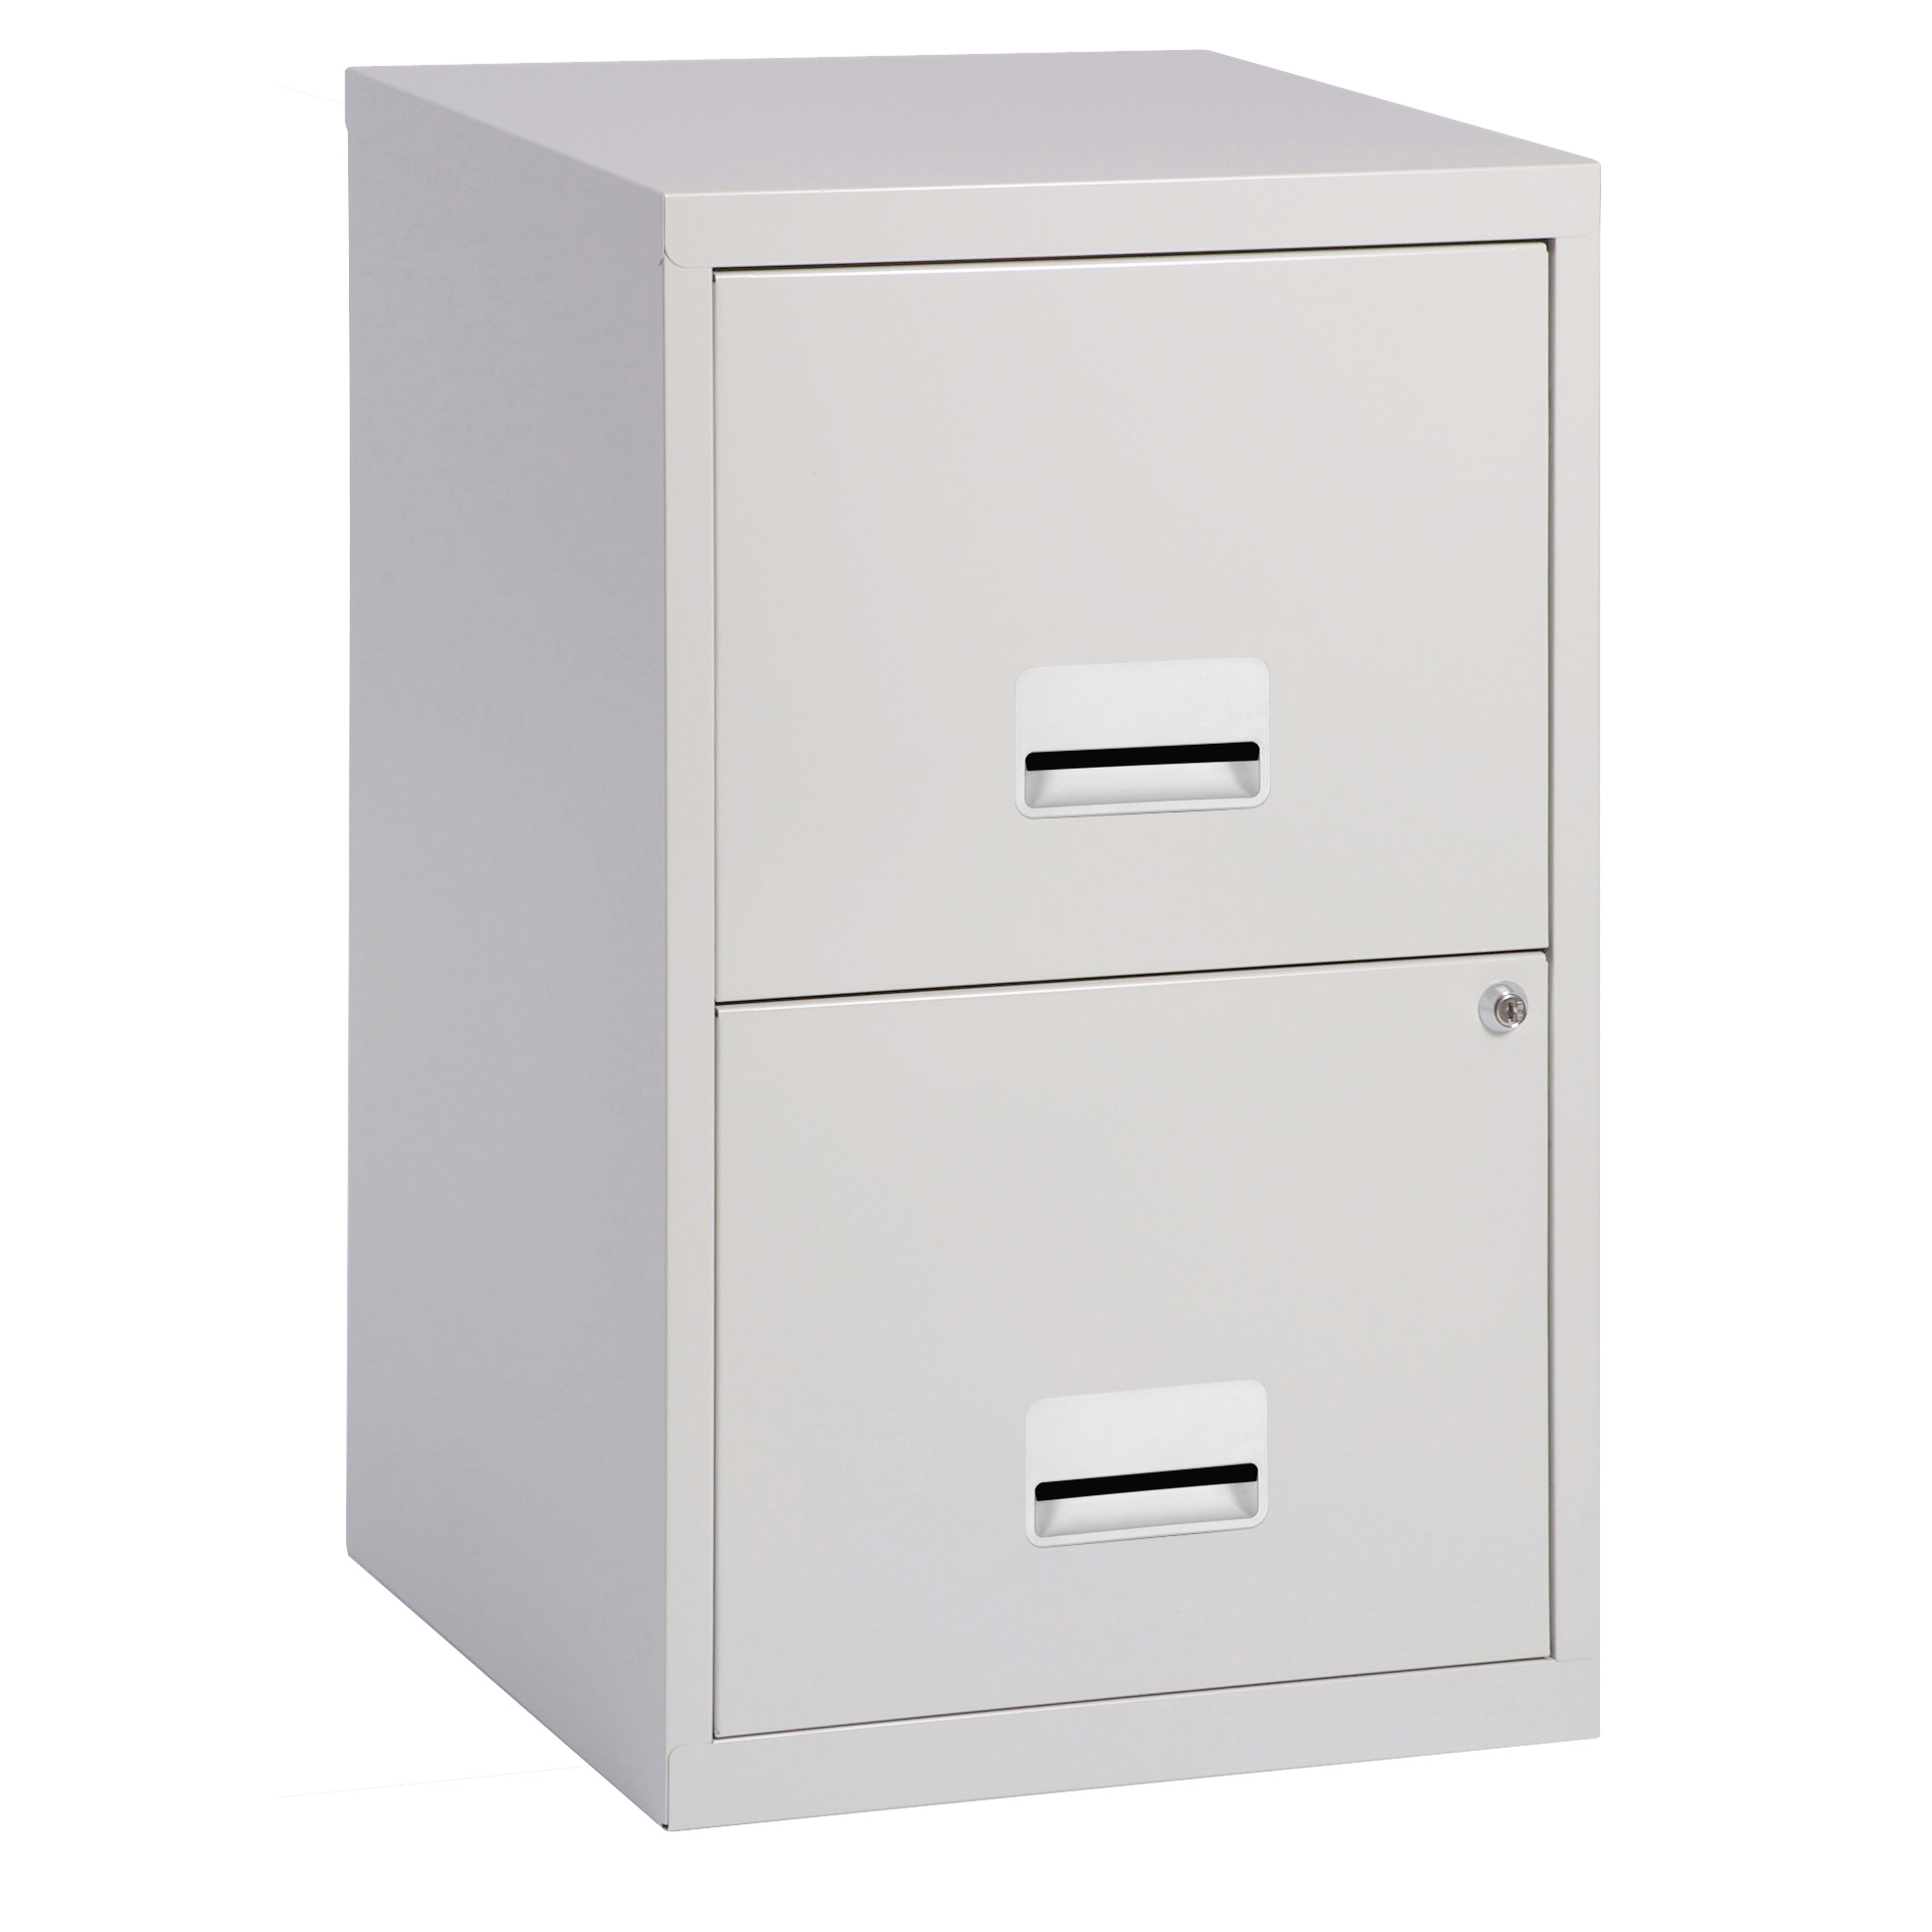 Filing cabinets or accesories Filing Cabinet Steel 2 Drawer A4 400x400x660mm Ref 95000